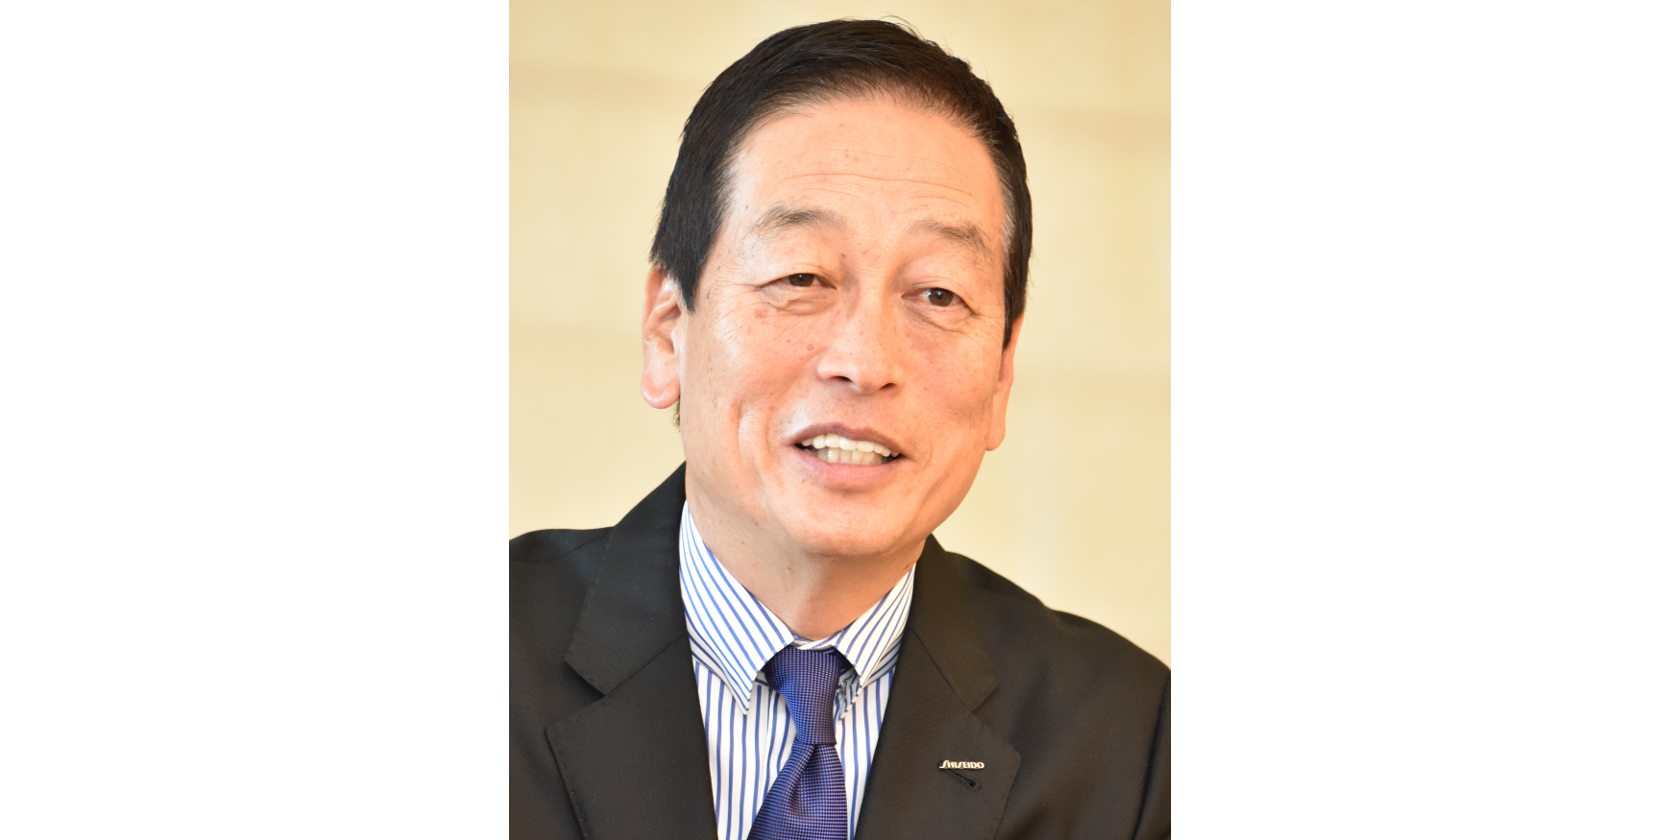 Interview: Shiseido CEO Masahiko Uotani Talks Revamped Supply Chain, Diversification Under Management Strategy